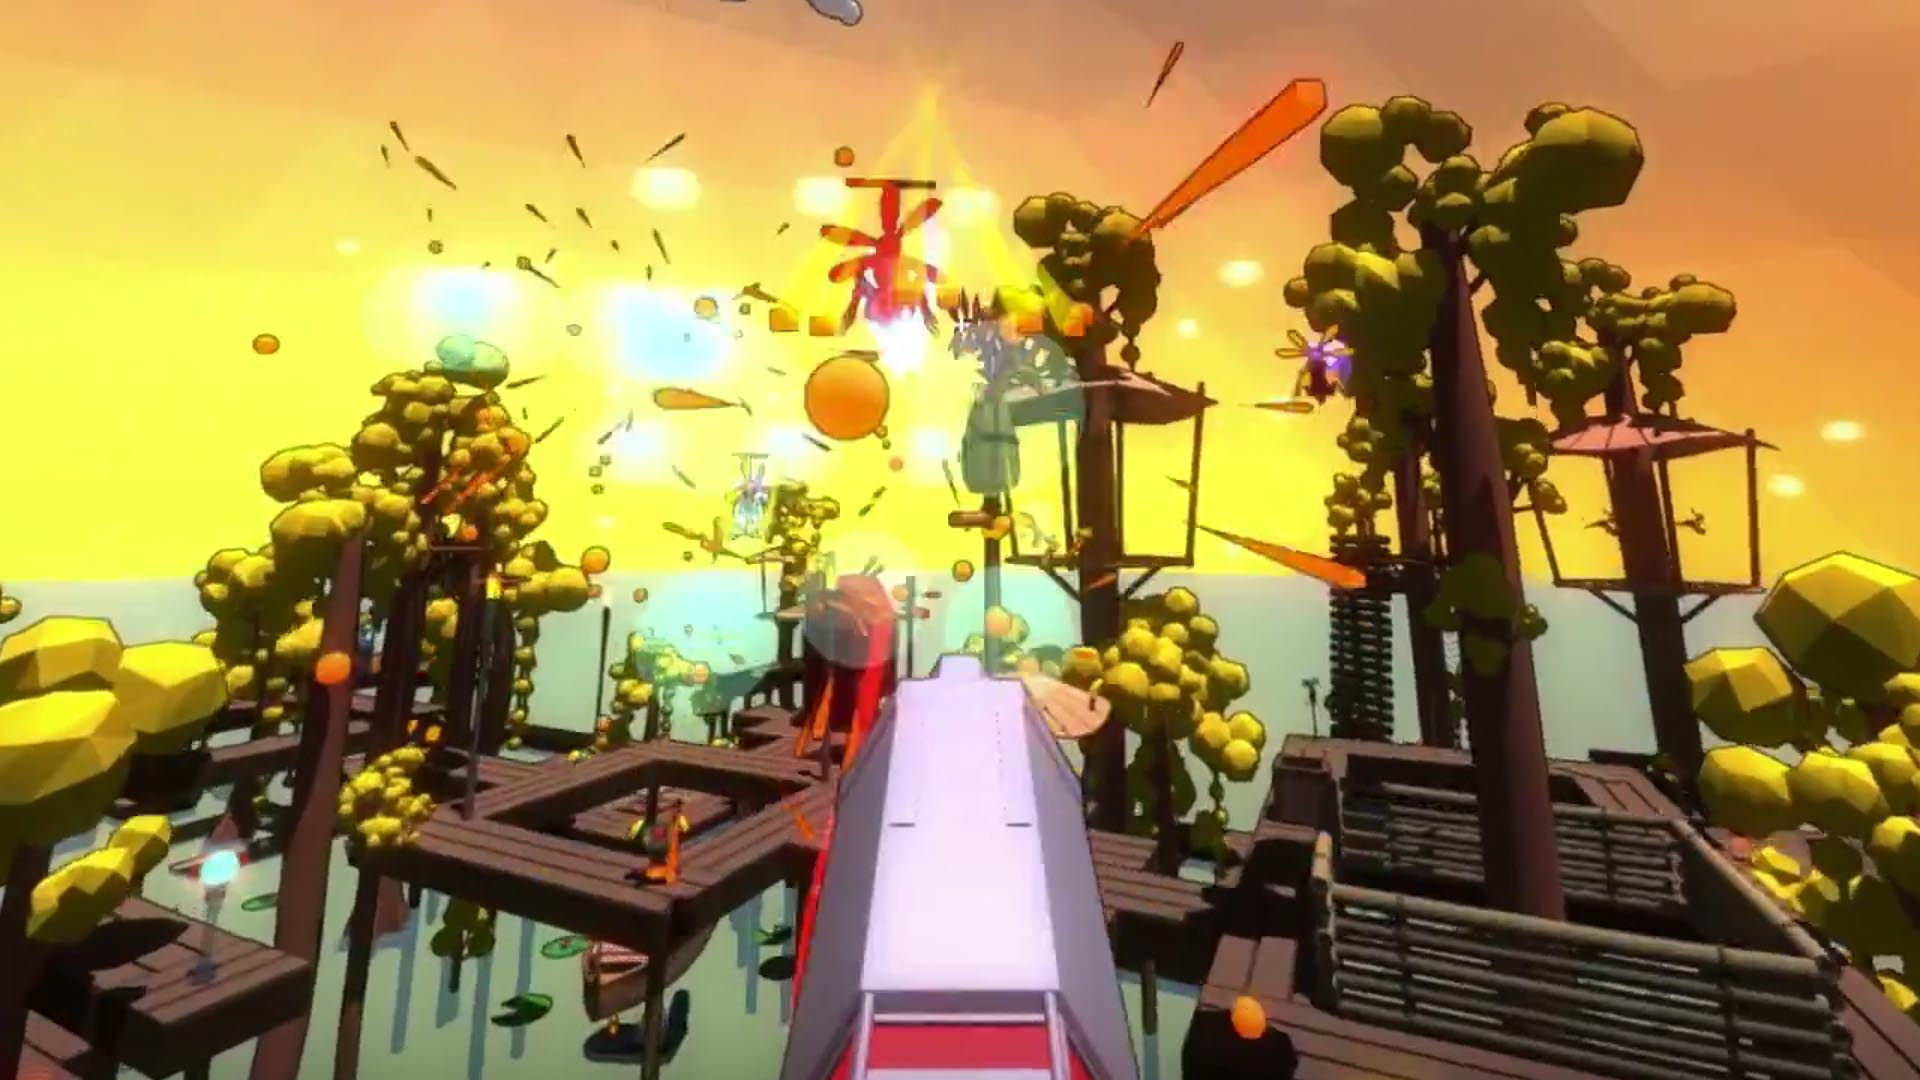 Polygod shoots to release this August